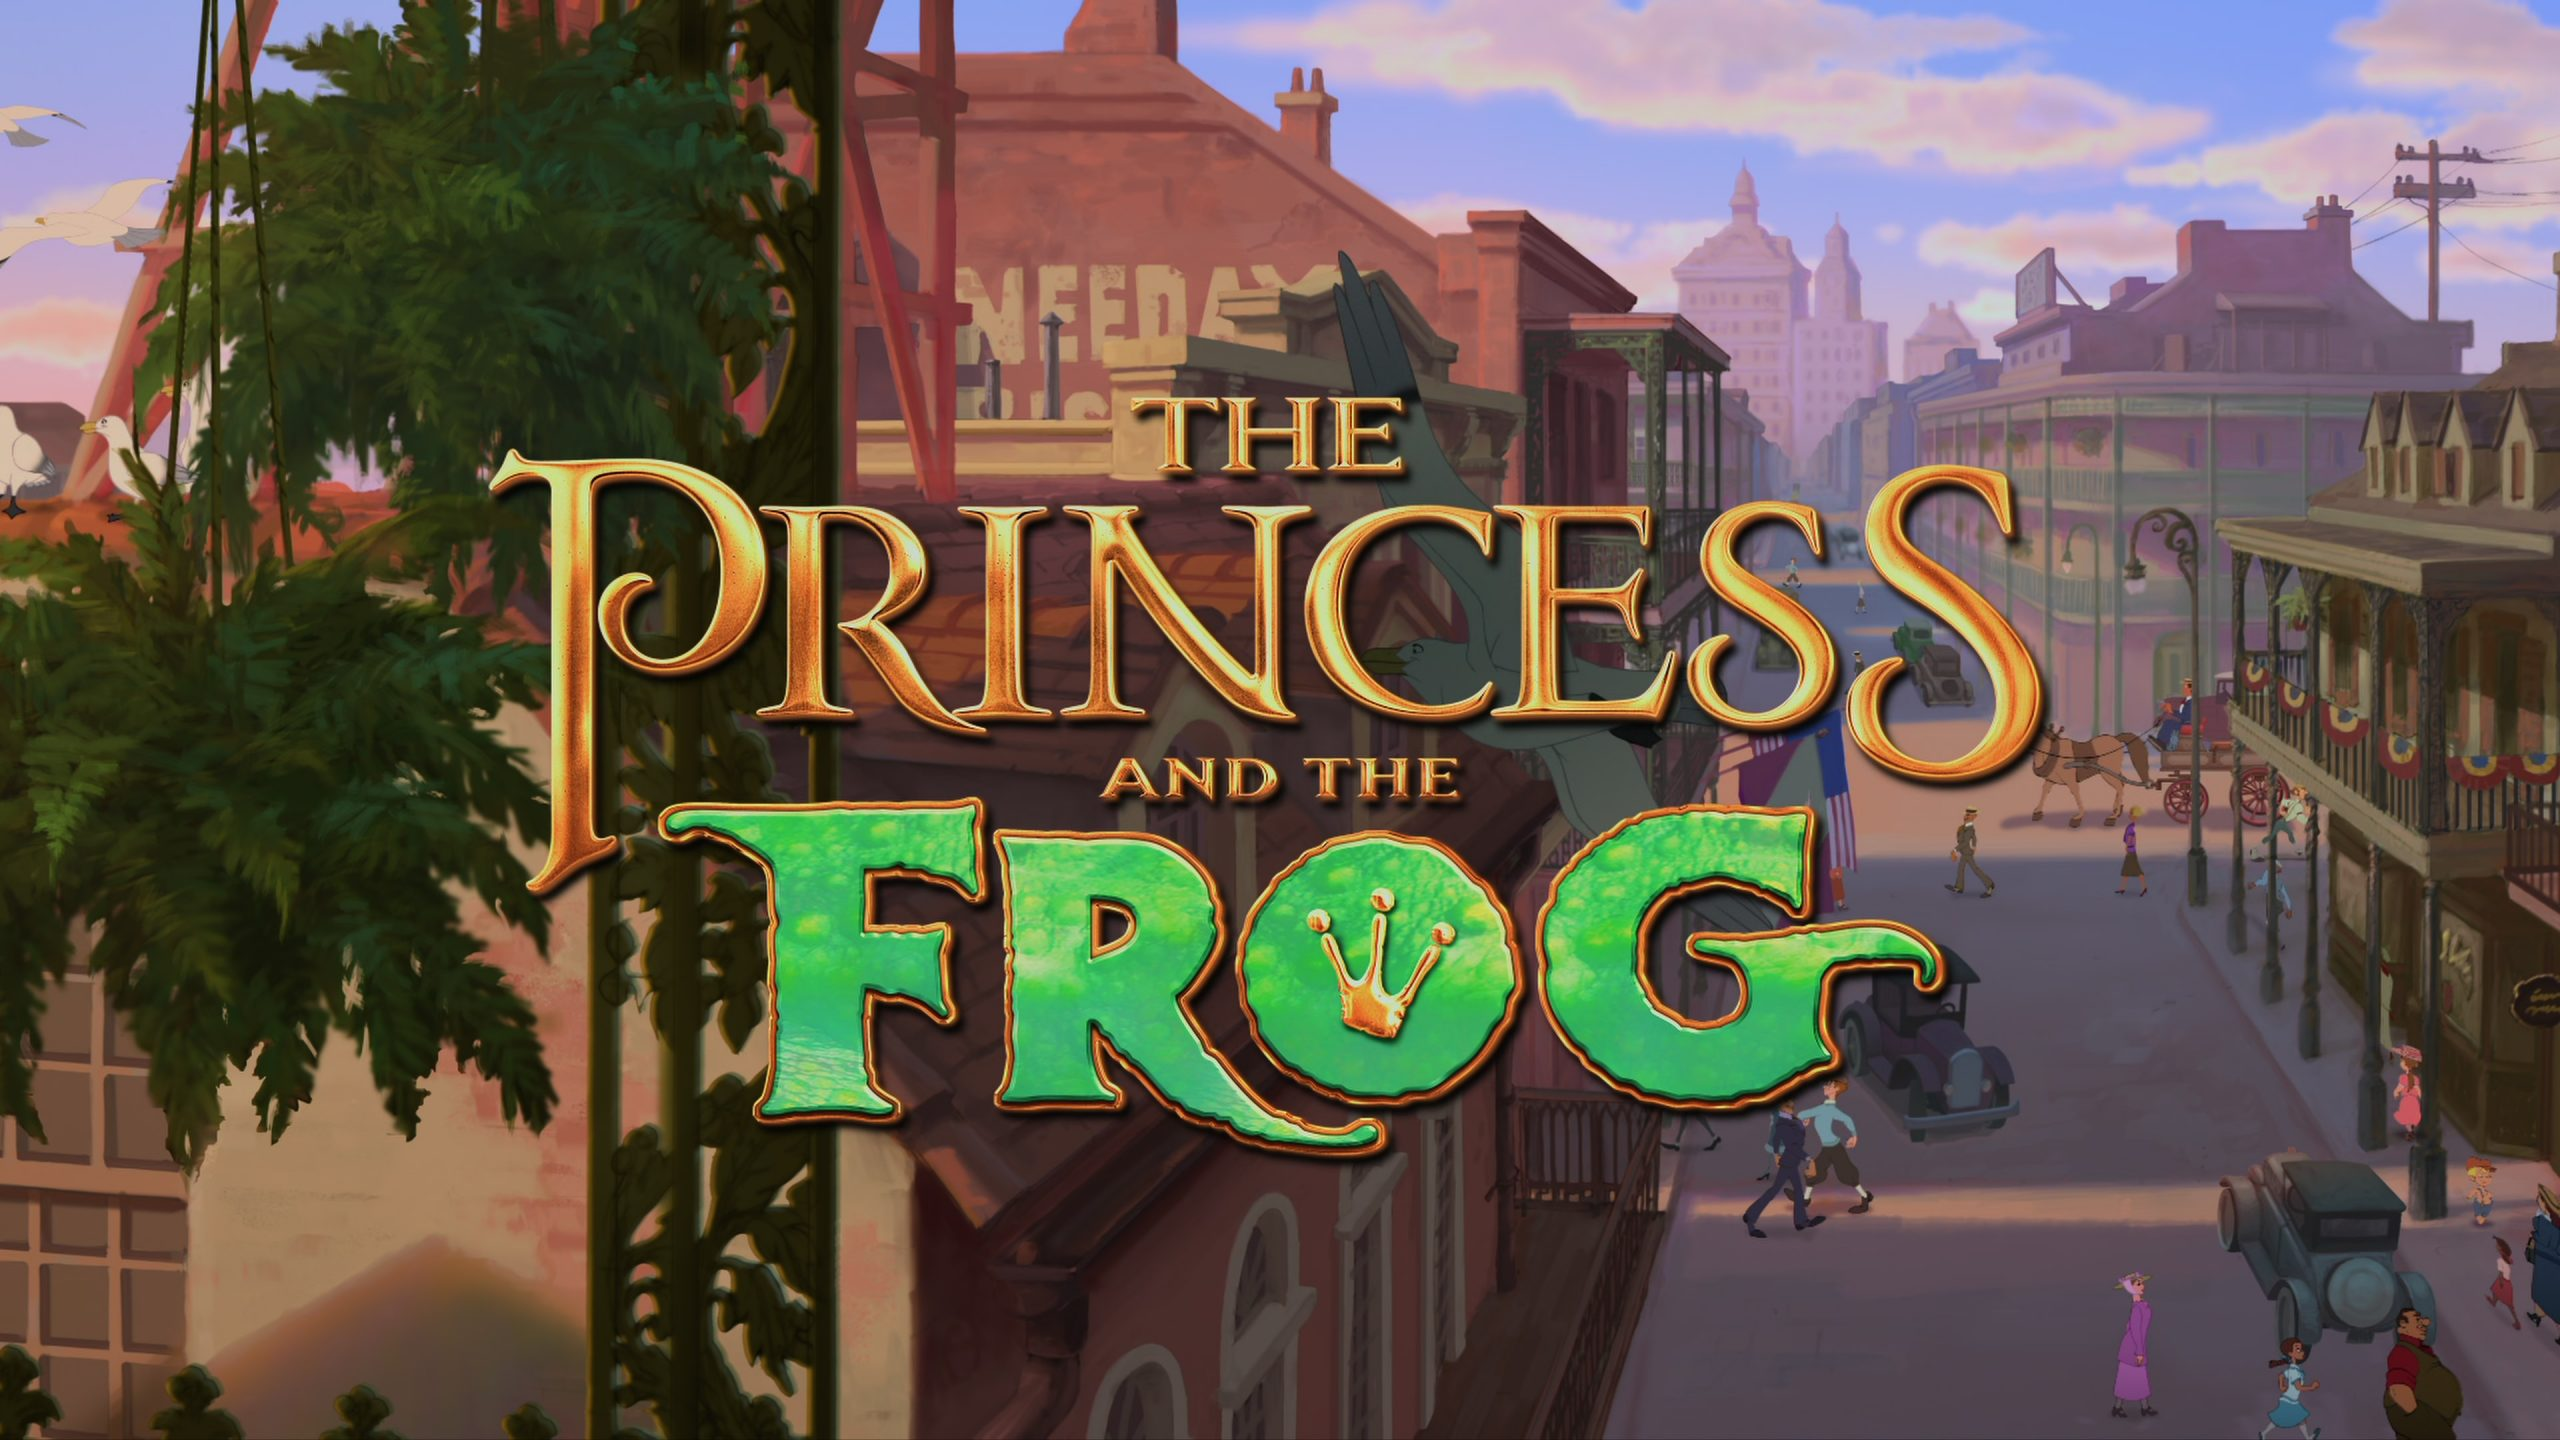 The Princess and the Frog (2009) [4K]